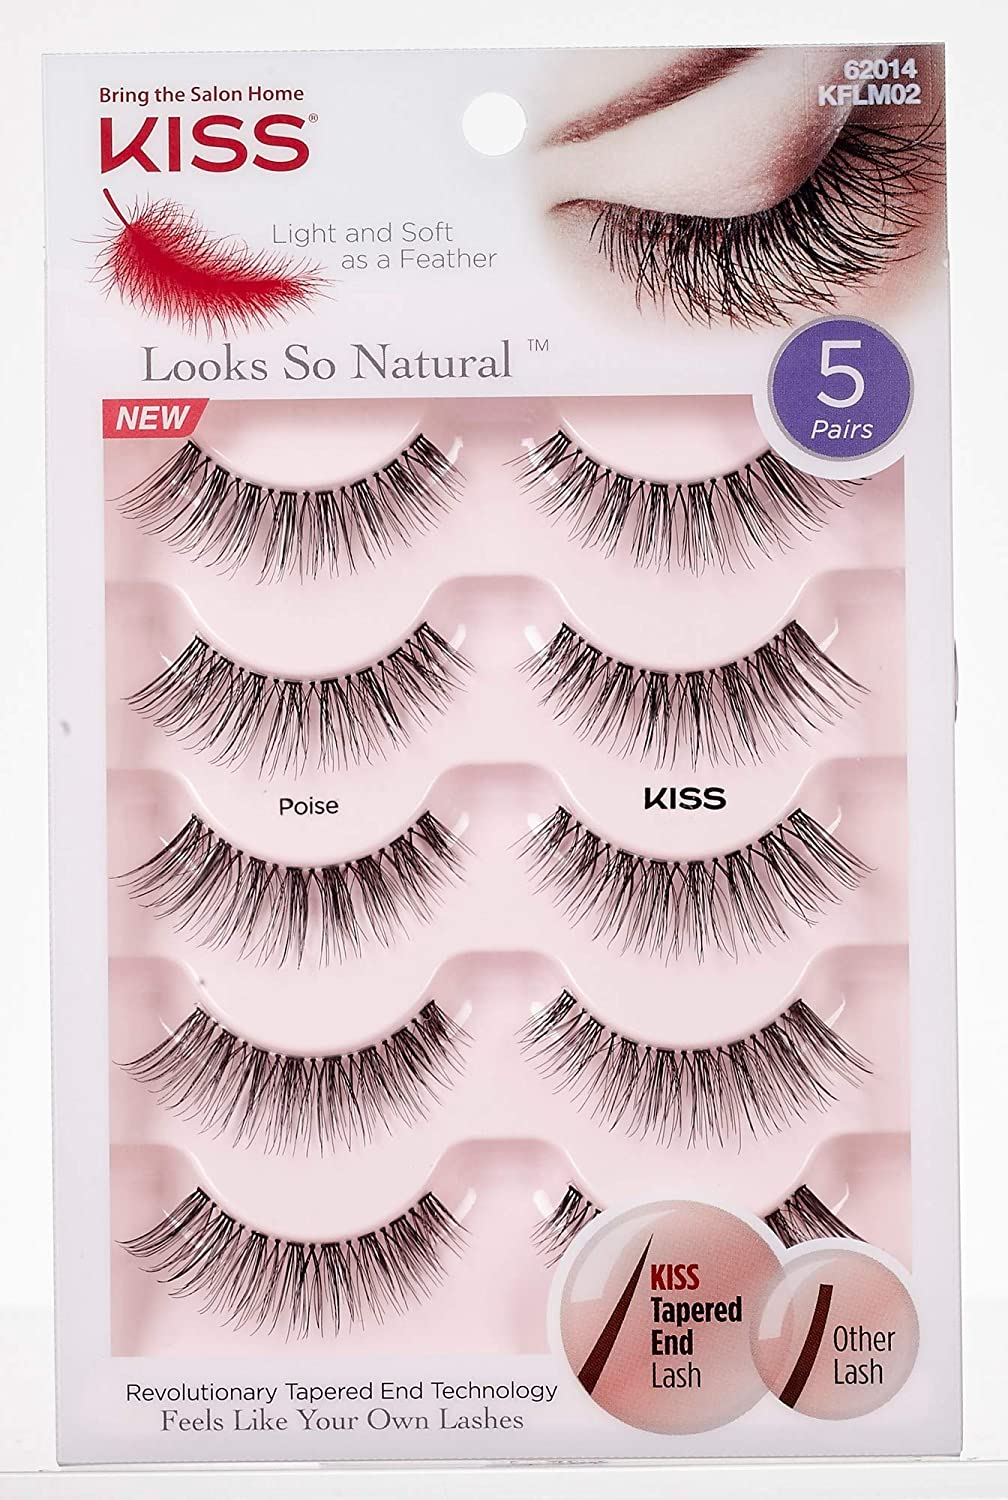 decf98a3ed8 Kiss Lashes Looks so Natural Multi Pack - Eyelashes, 0.05 Pounds:  Amazon.ca: Beauty